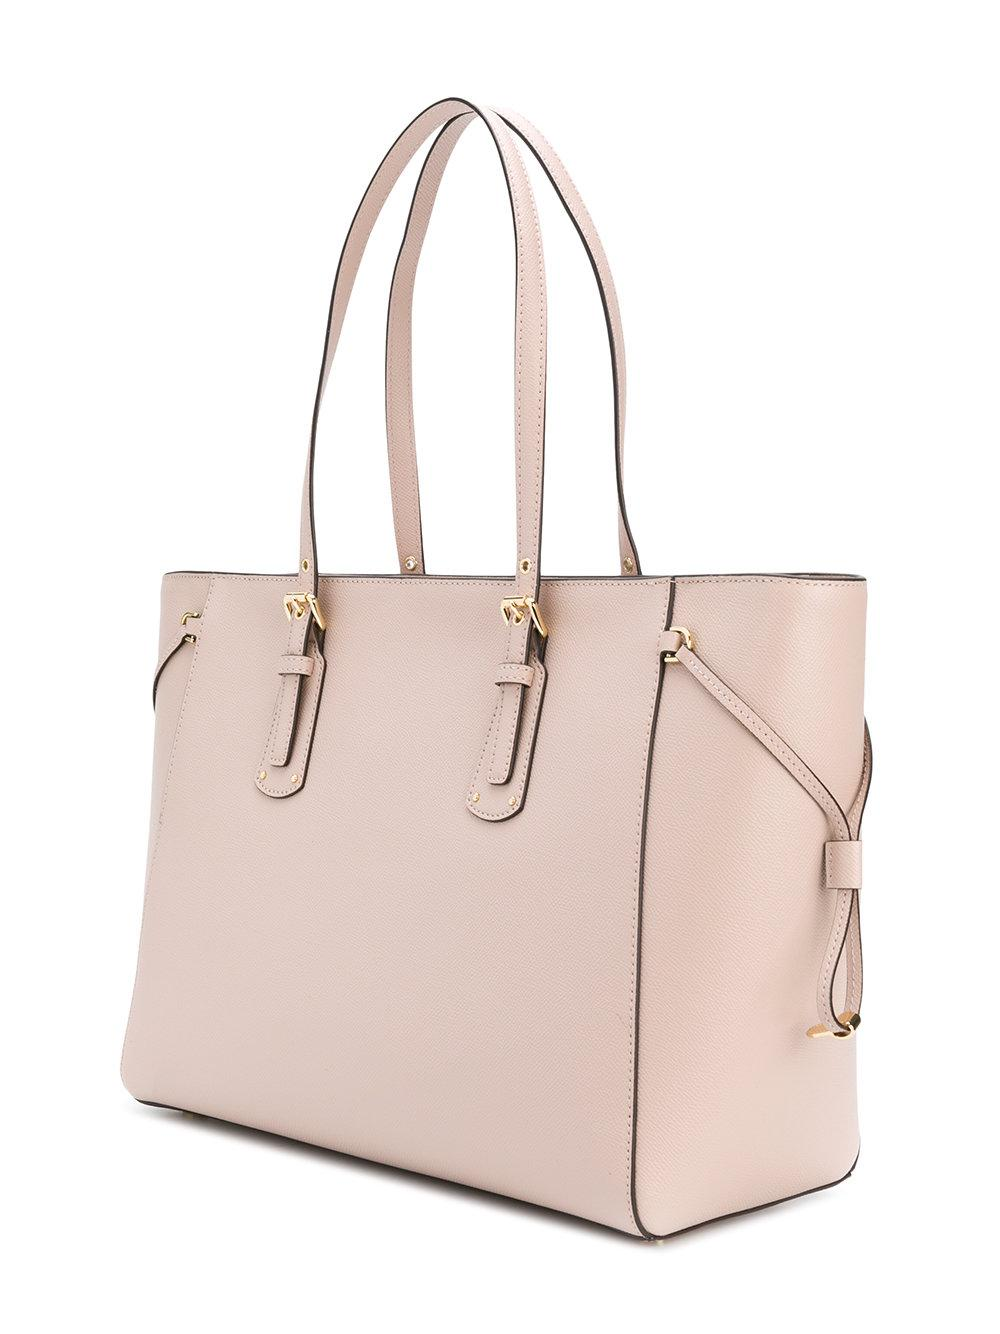 25ee1f11395b Gallery. Previously sold at  Farfetch · Women s Longchamp Penelope Women s Michael  Kors ...